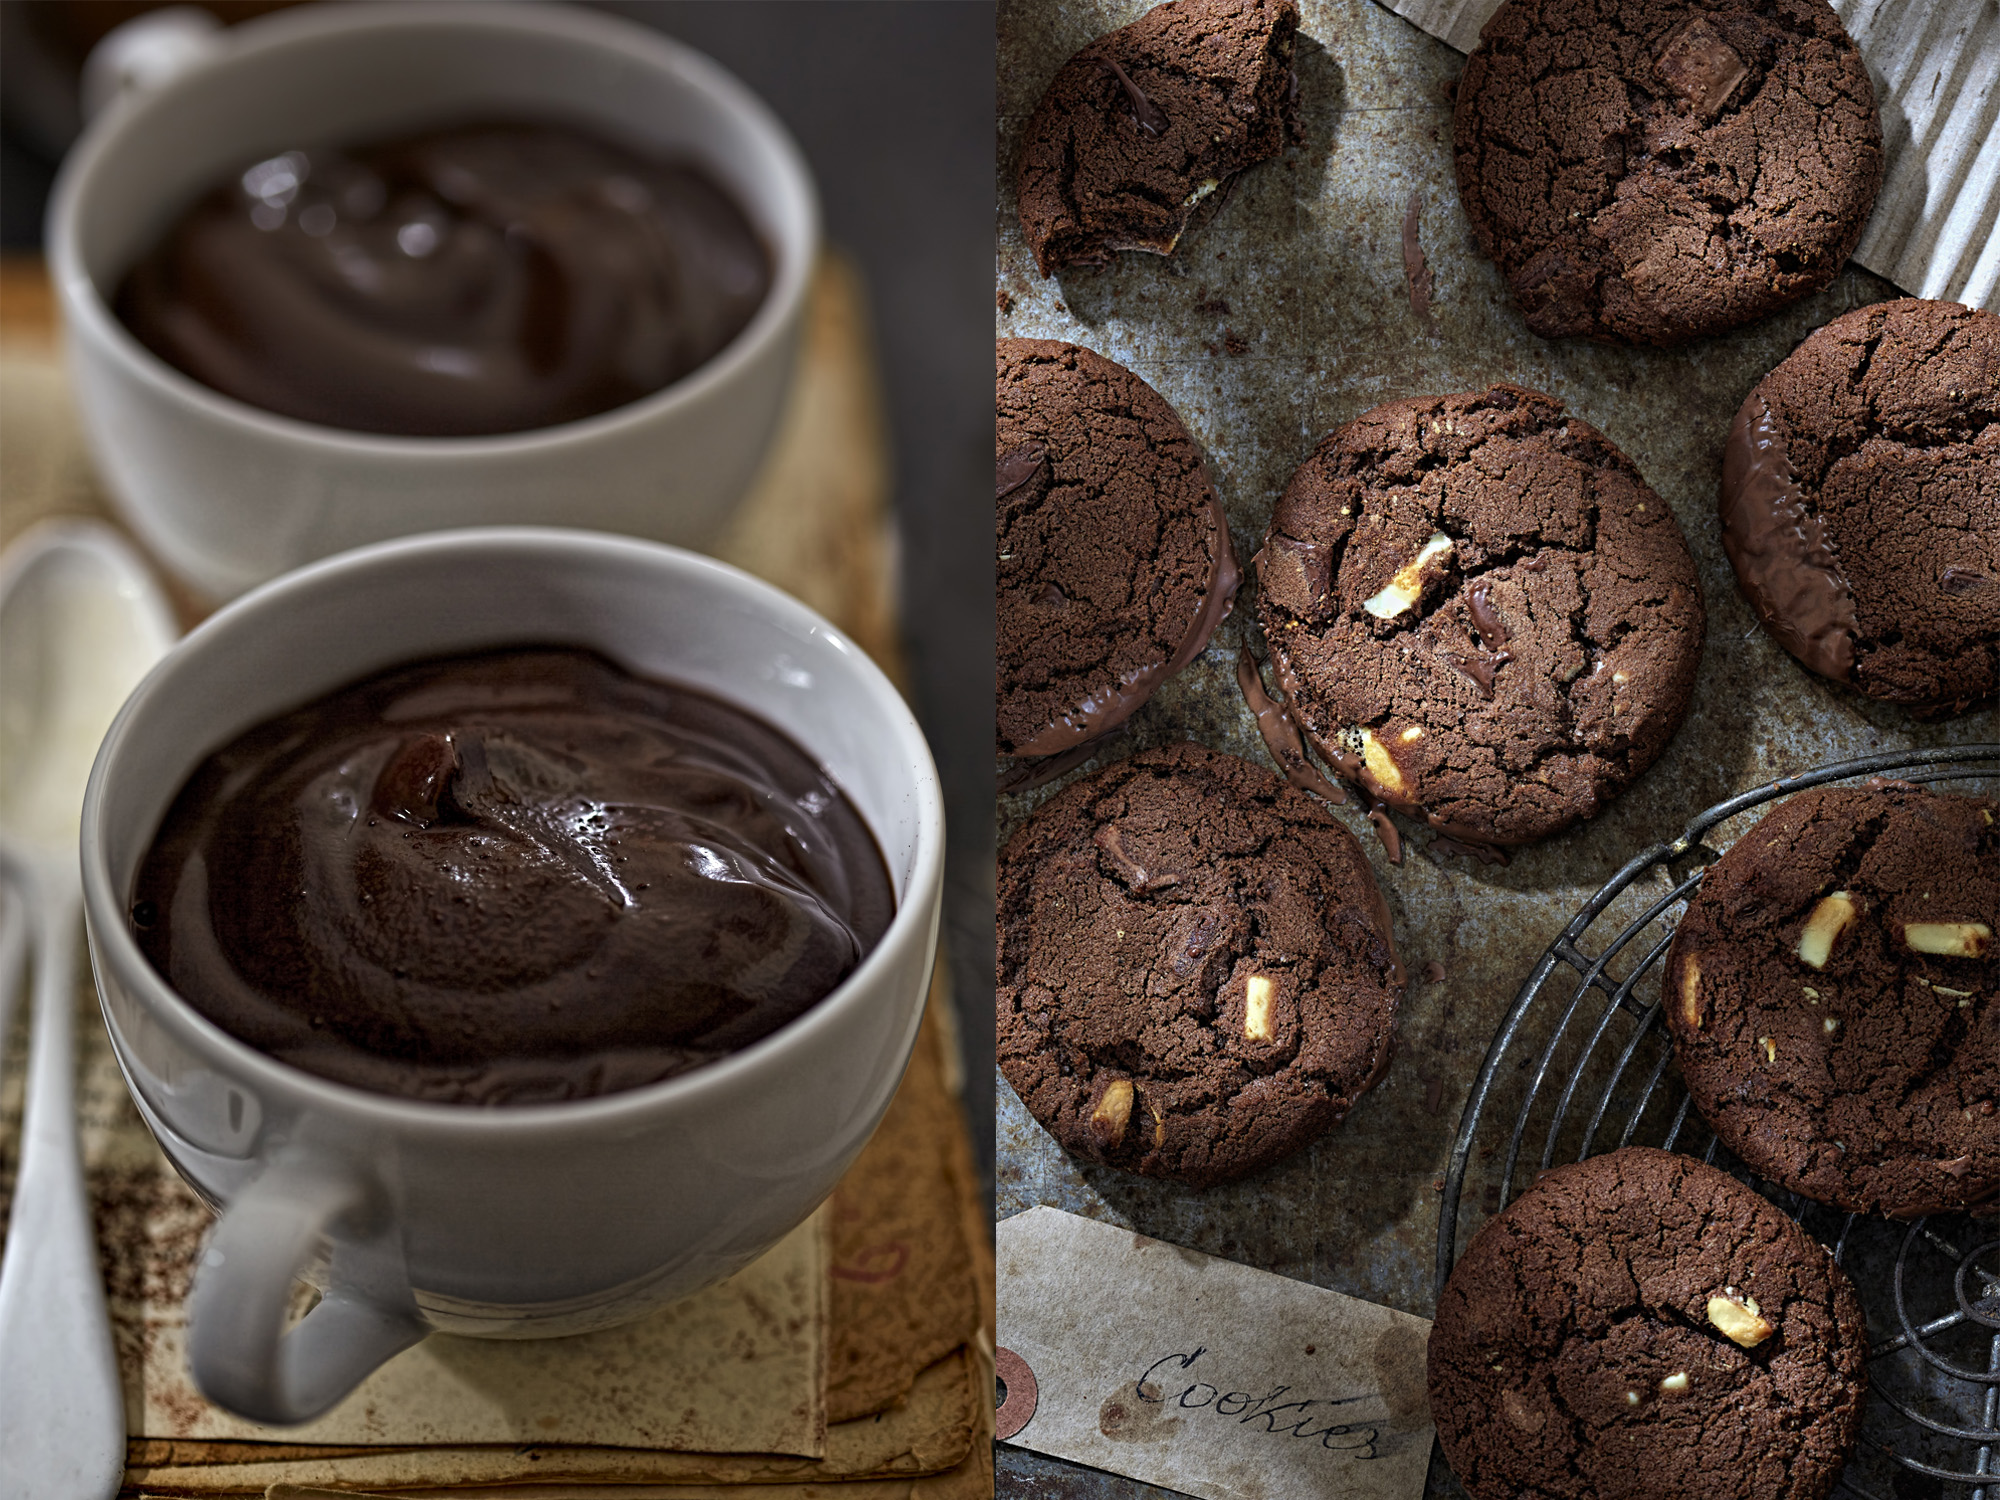 Chocolate pudding and cookies